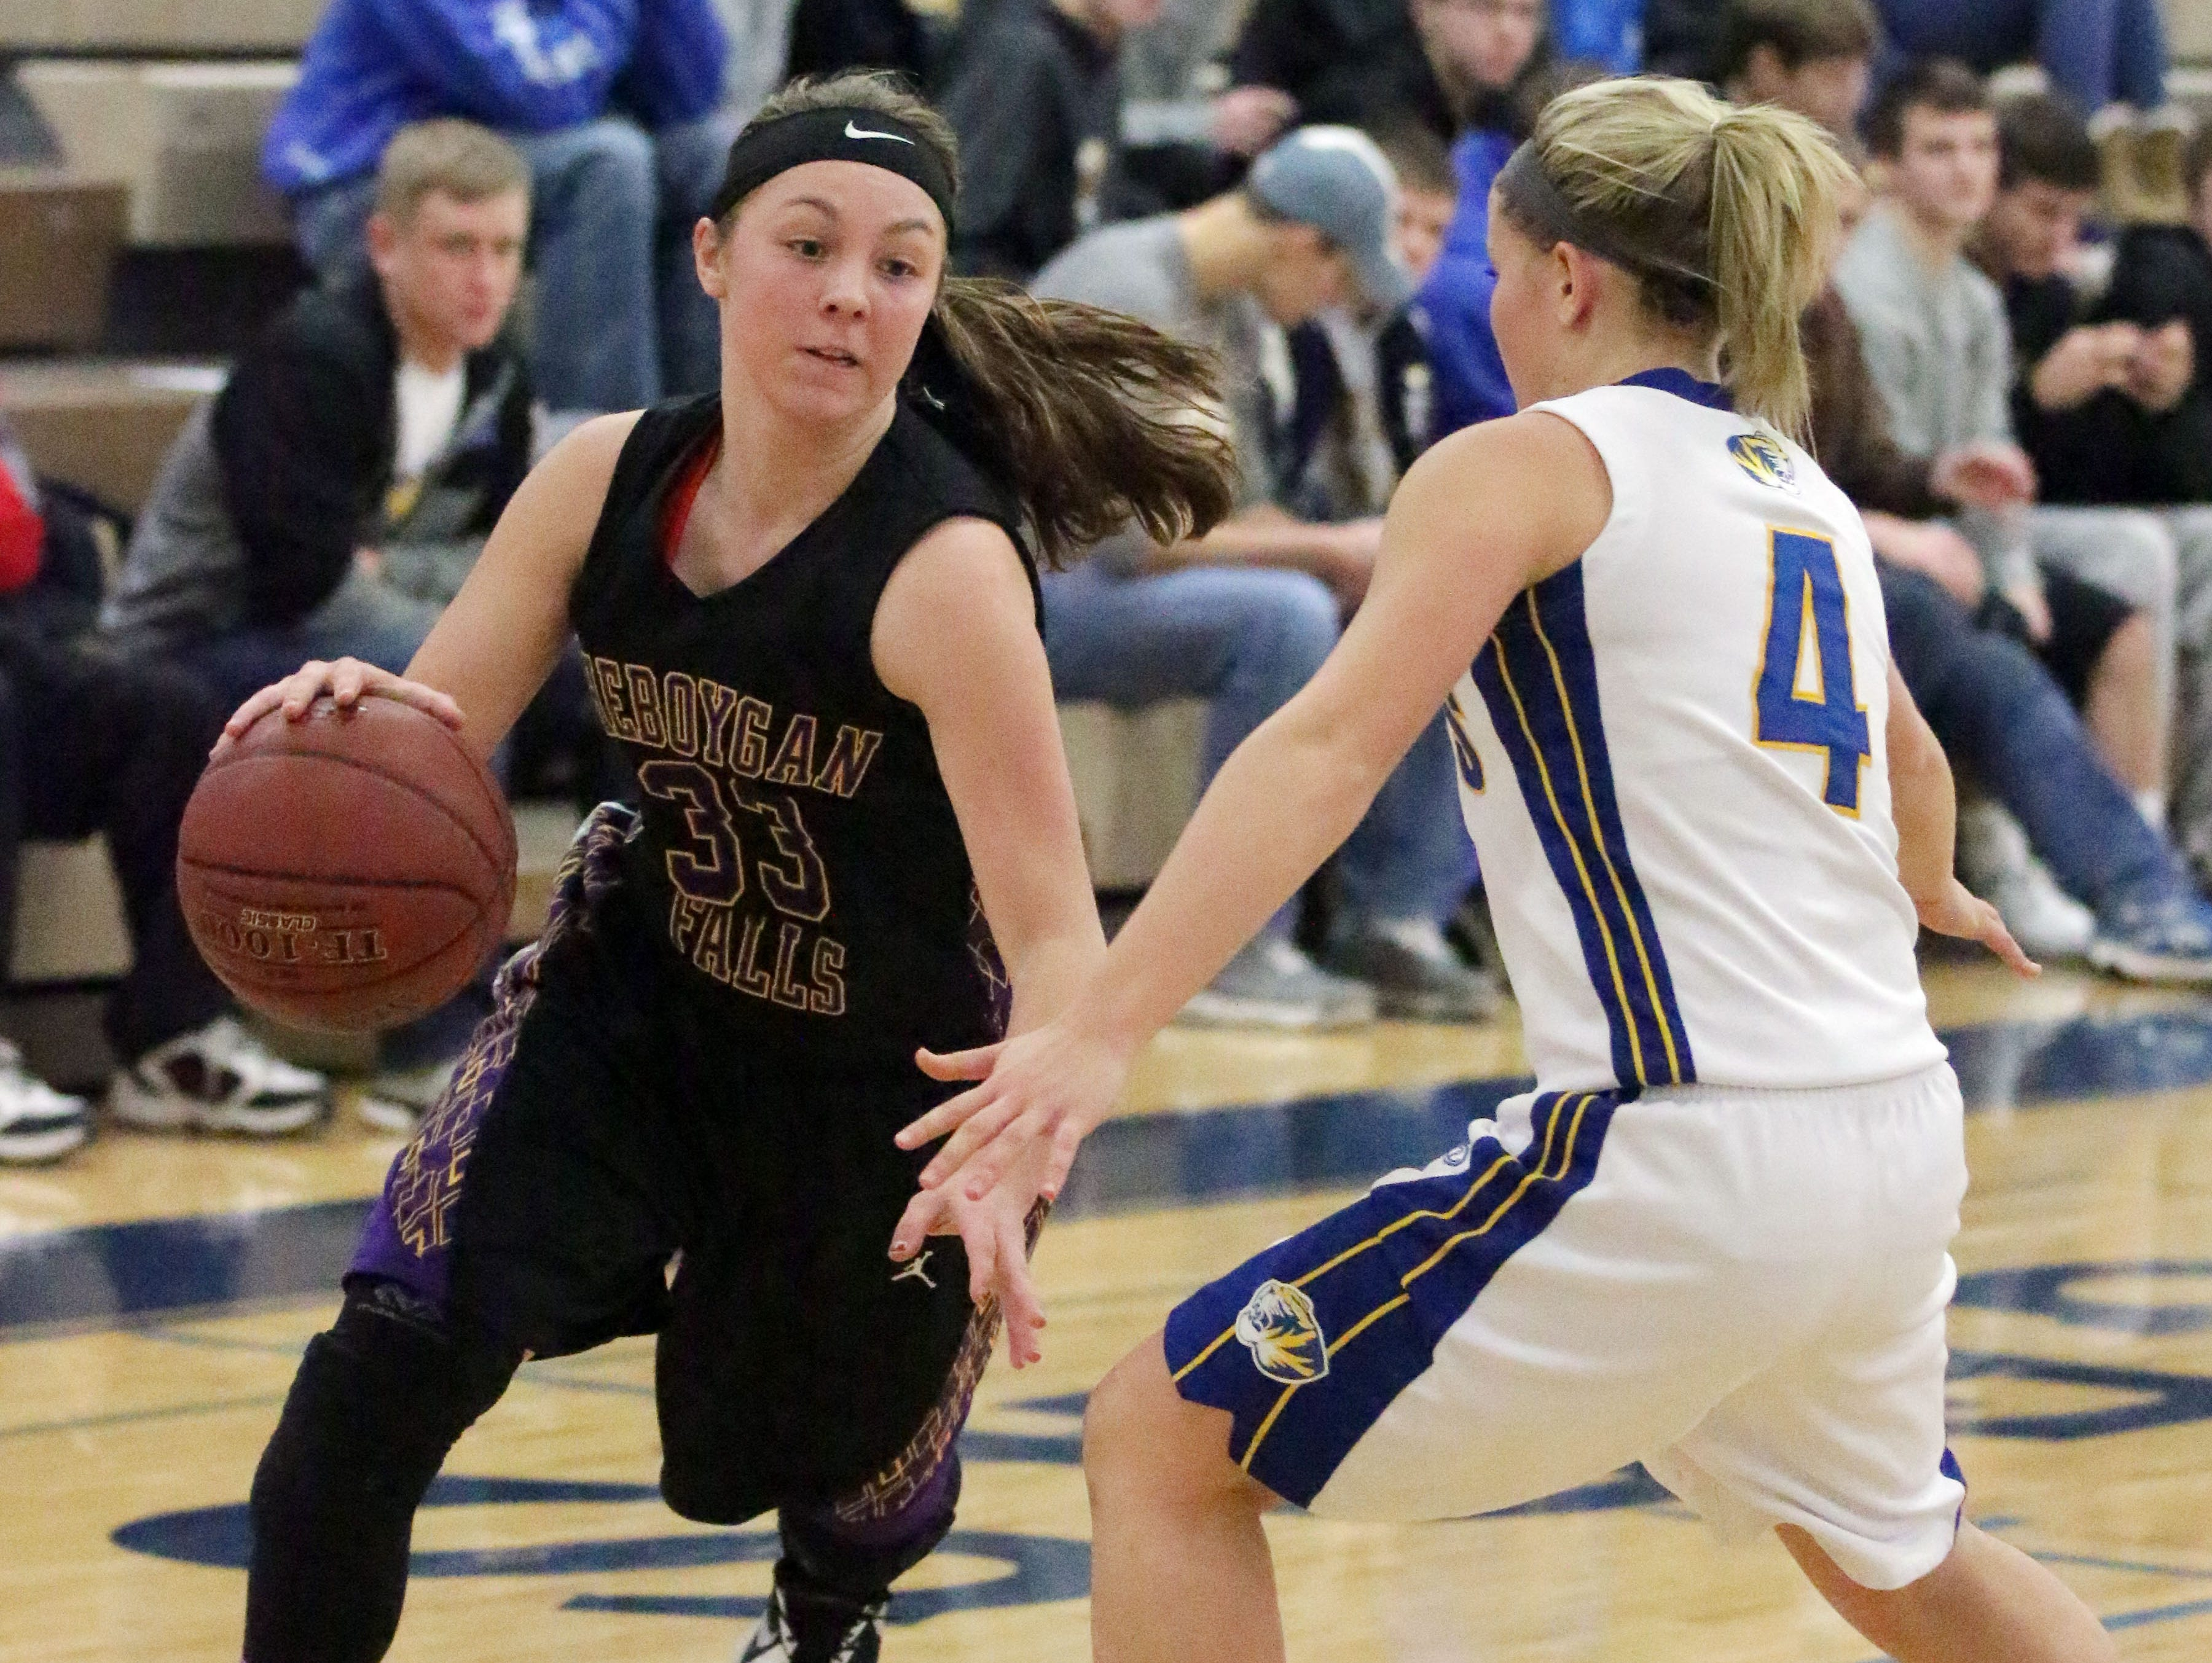 Senior Becky Raeder was the leading scorer last year for the Falcons and a first-team all-conference selection a year ago.